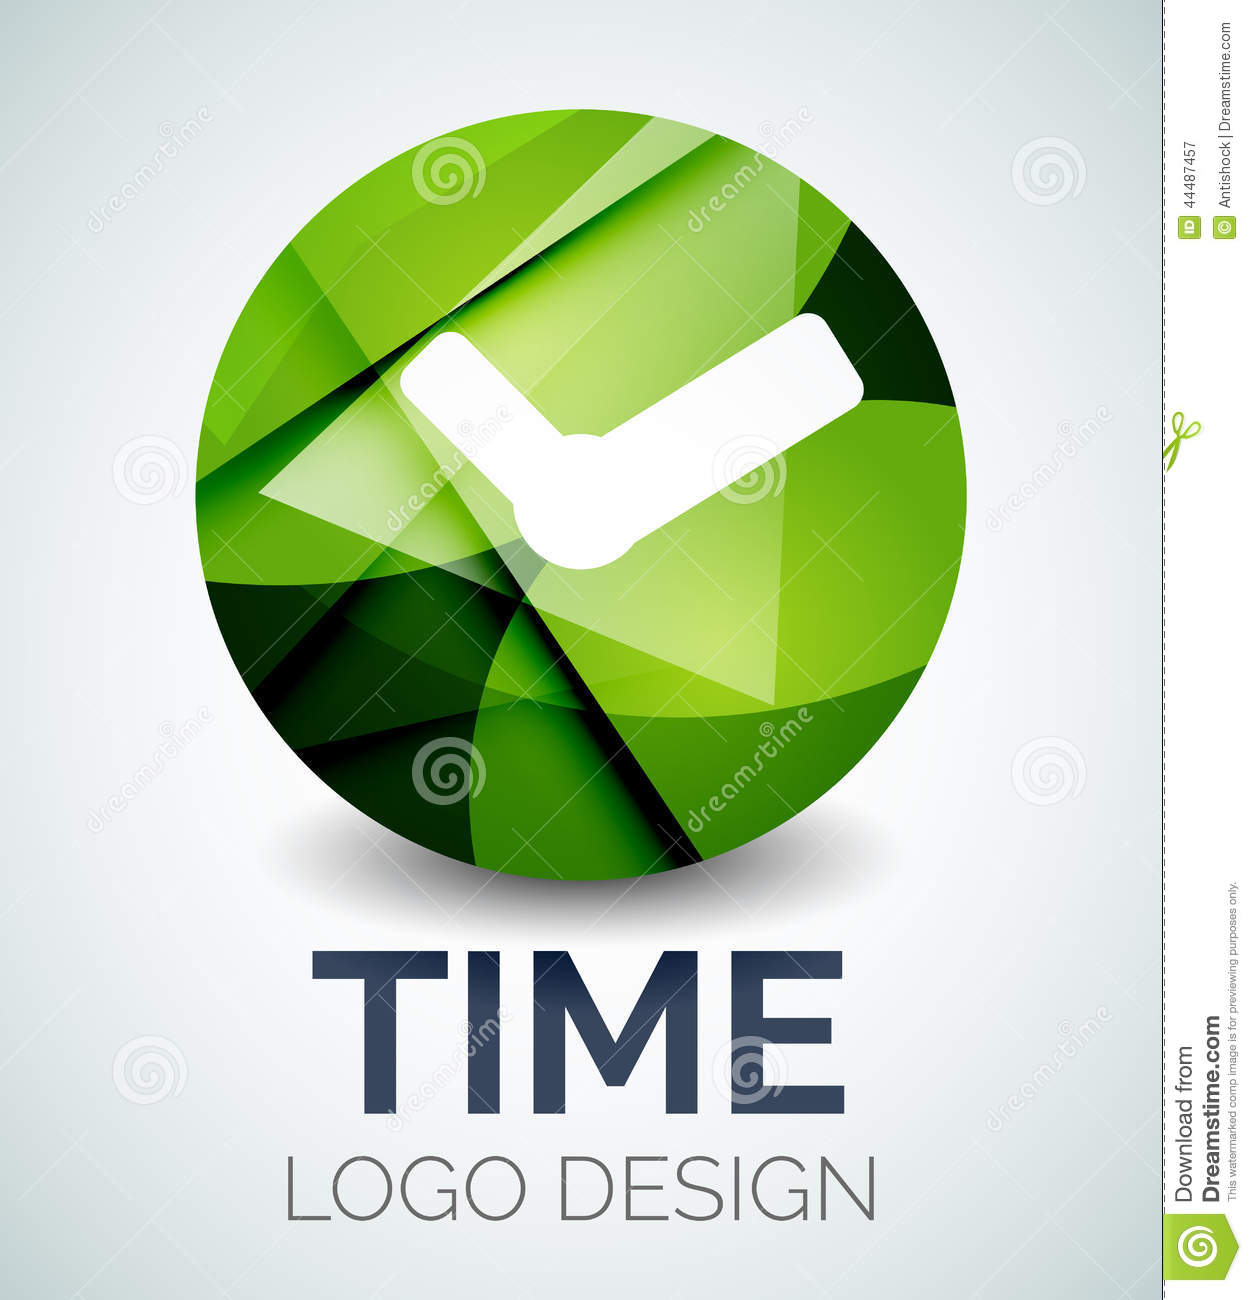 Stock Illustration Time Clock Logo Design Made Color Pieces Abstract Various Geometric Shapes Image44487457 on alarm clock graphic